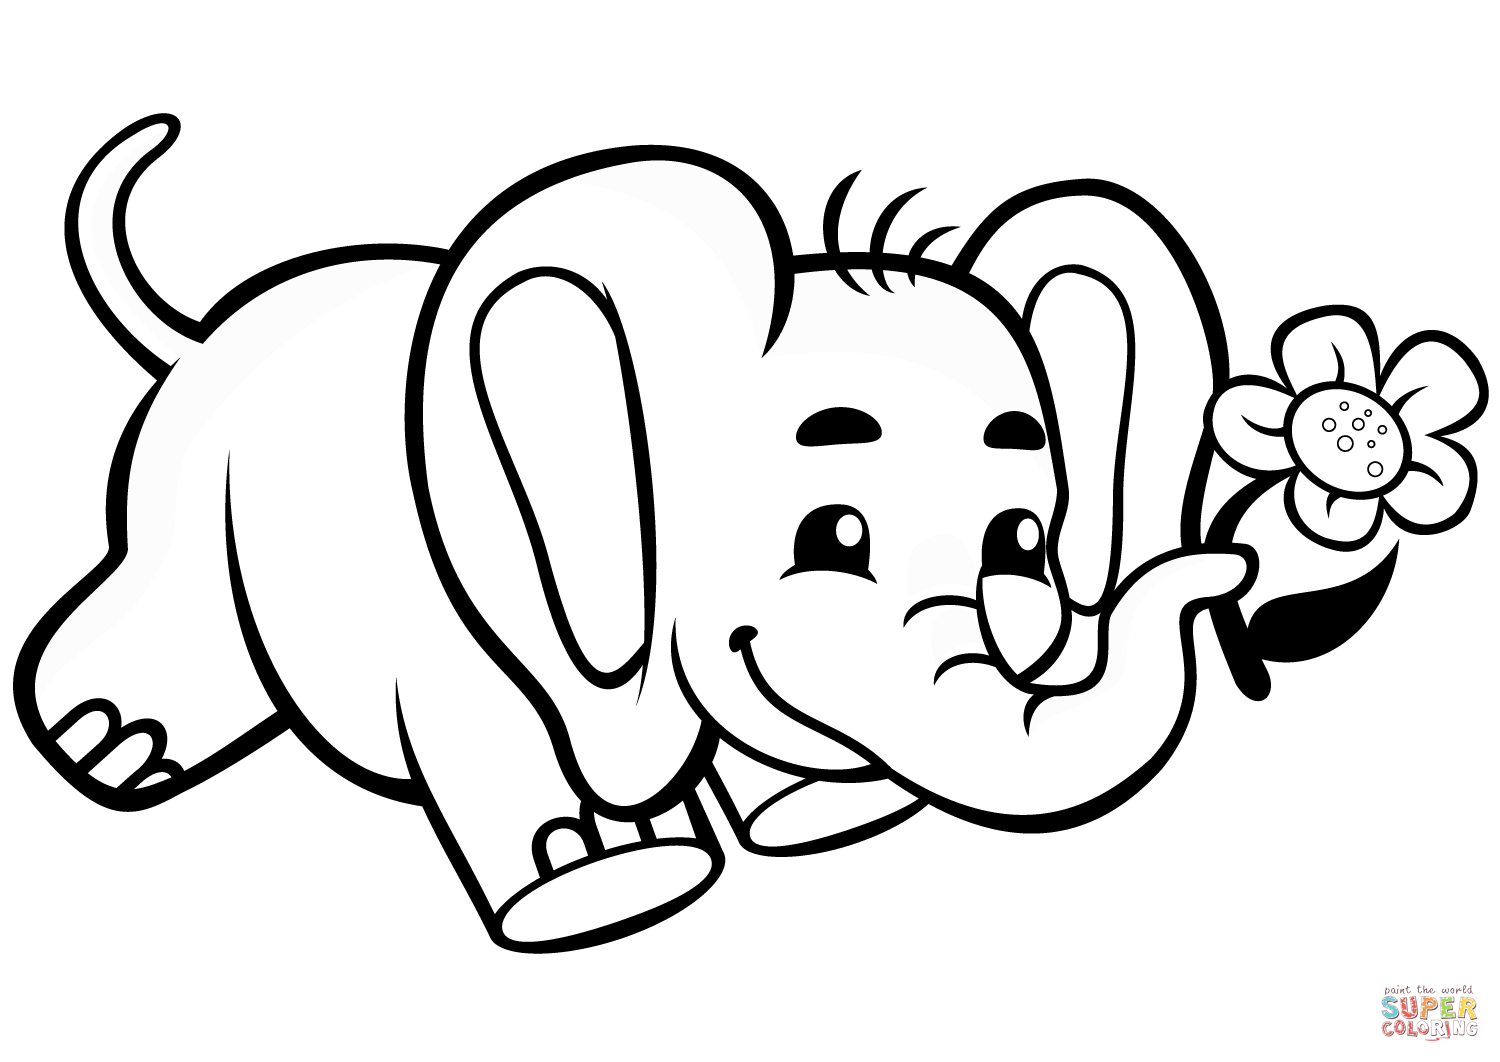 elephants coloring pages 20 of the best ideas for cute elephant coloring pages coloring pages elephants